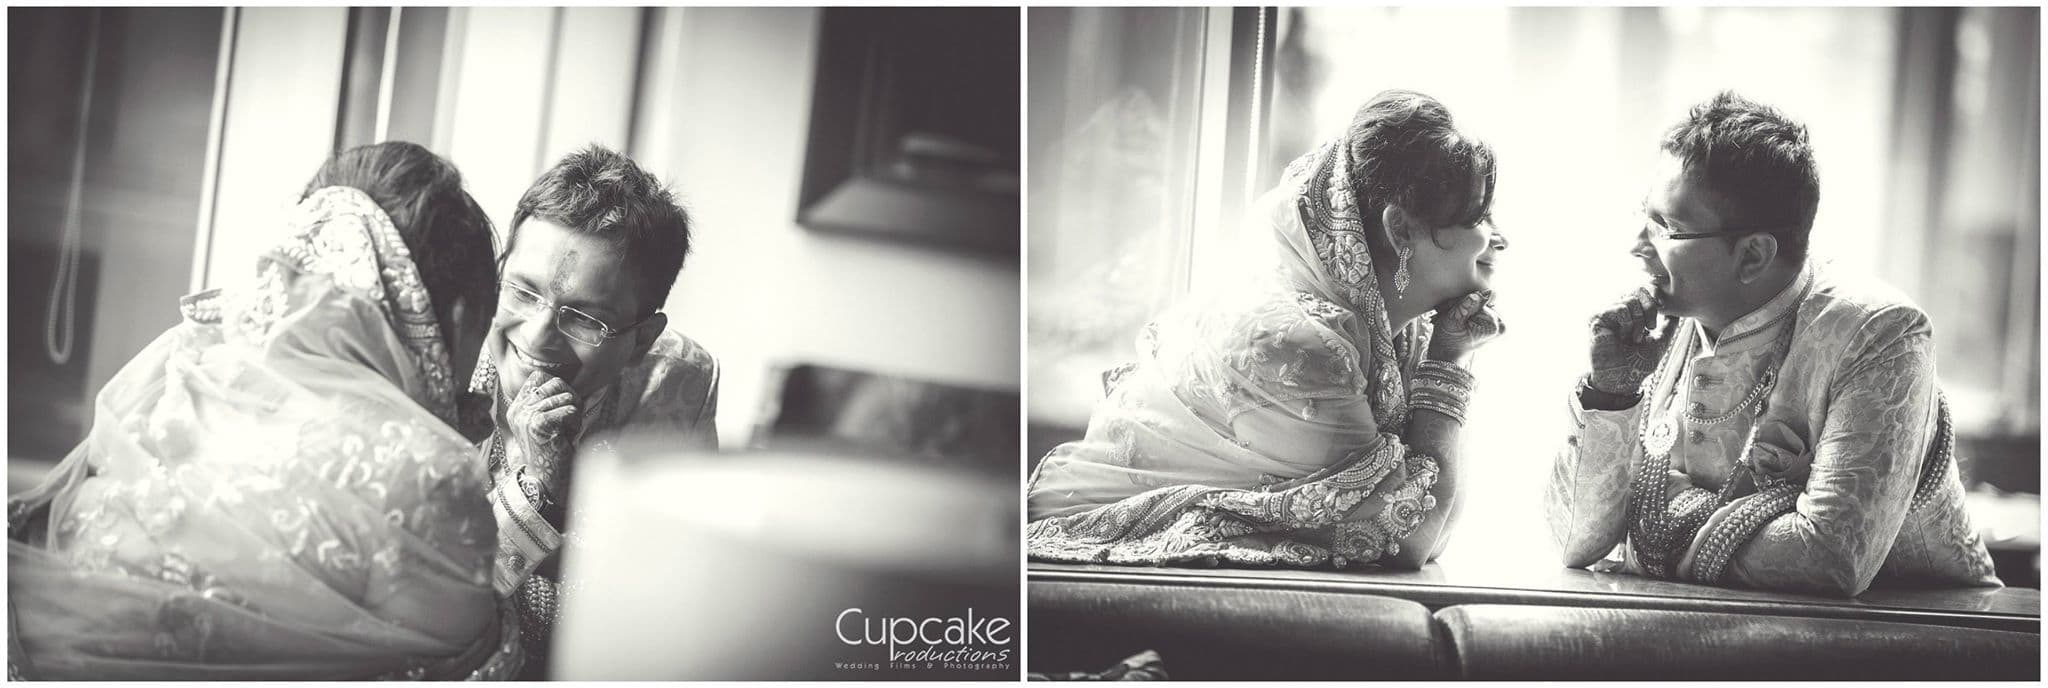 superb couple photoshoot:cupcake productions